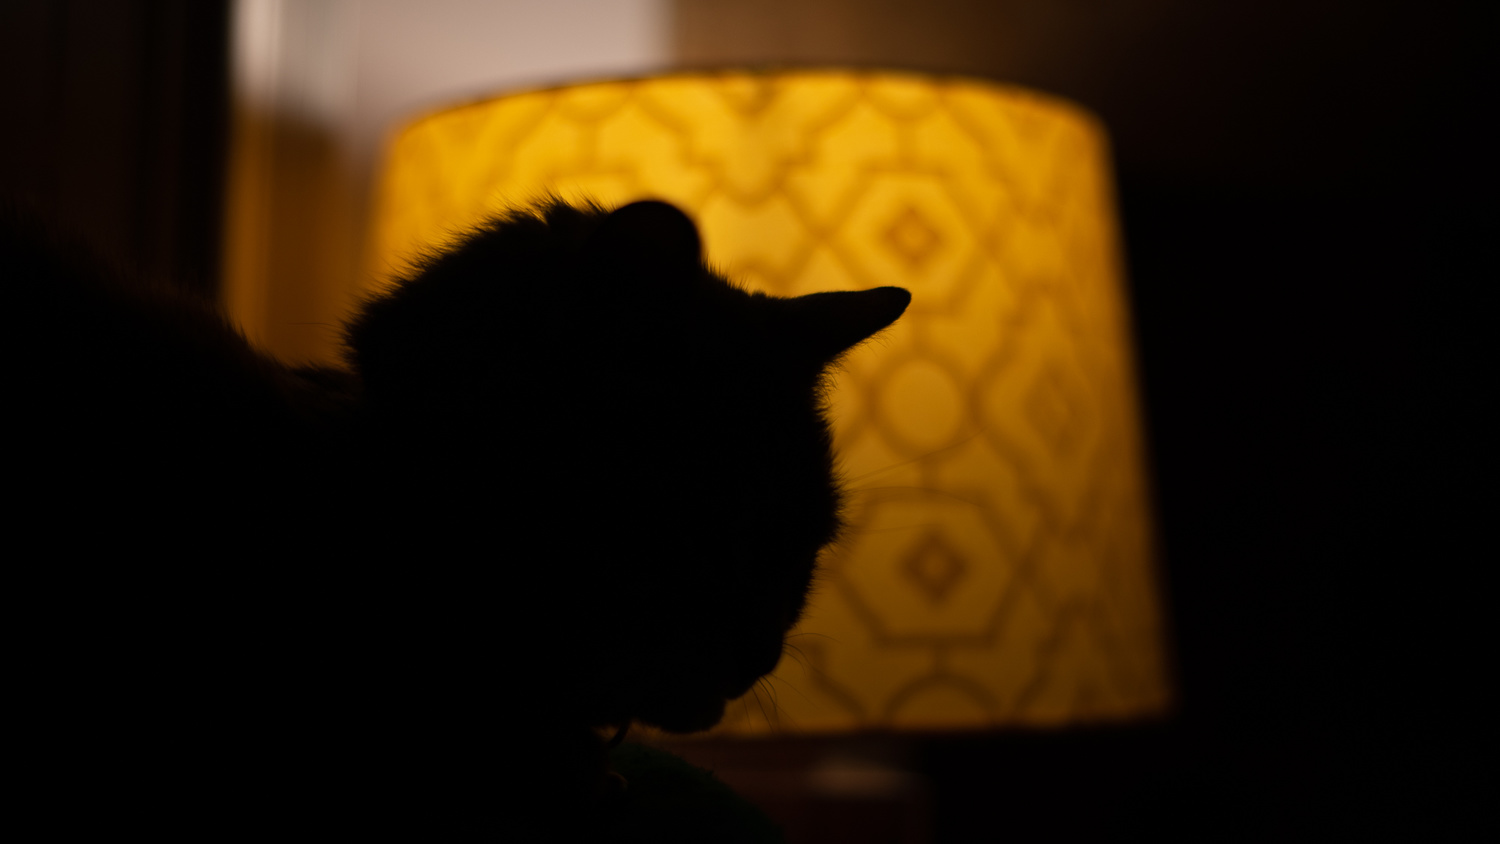 Underexposed pet portrait next to lamp